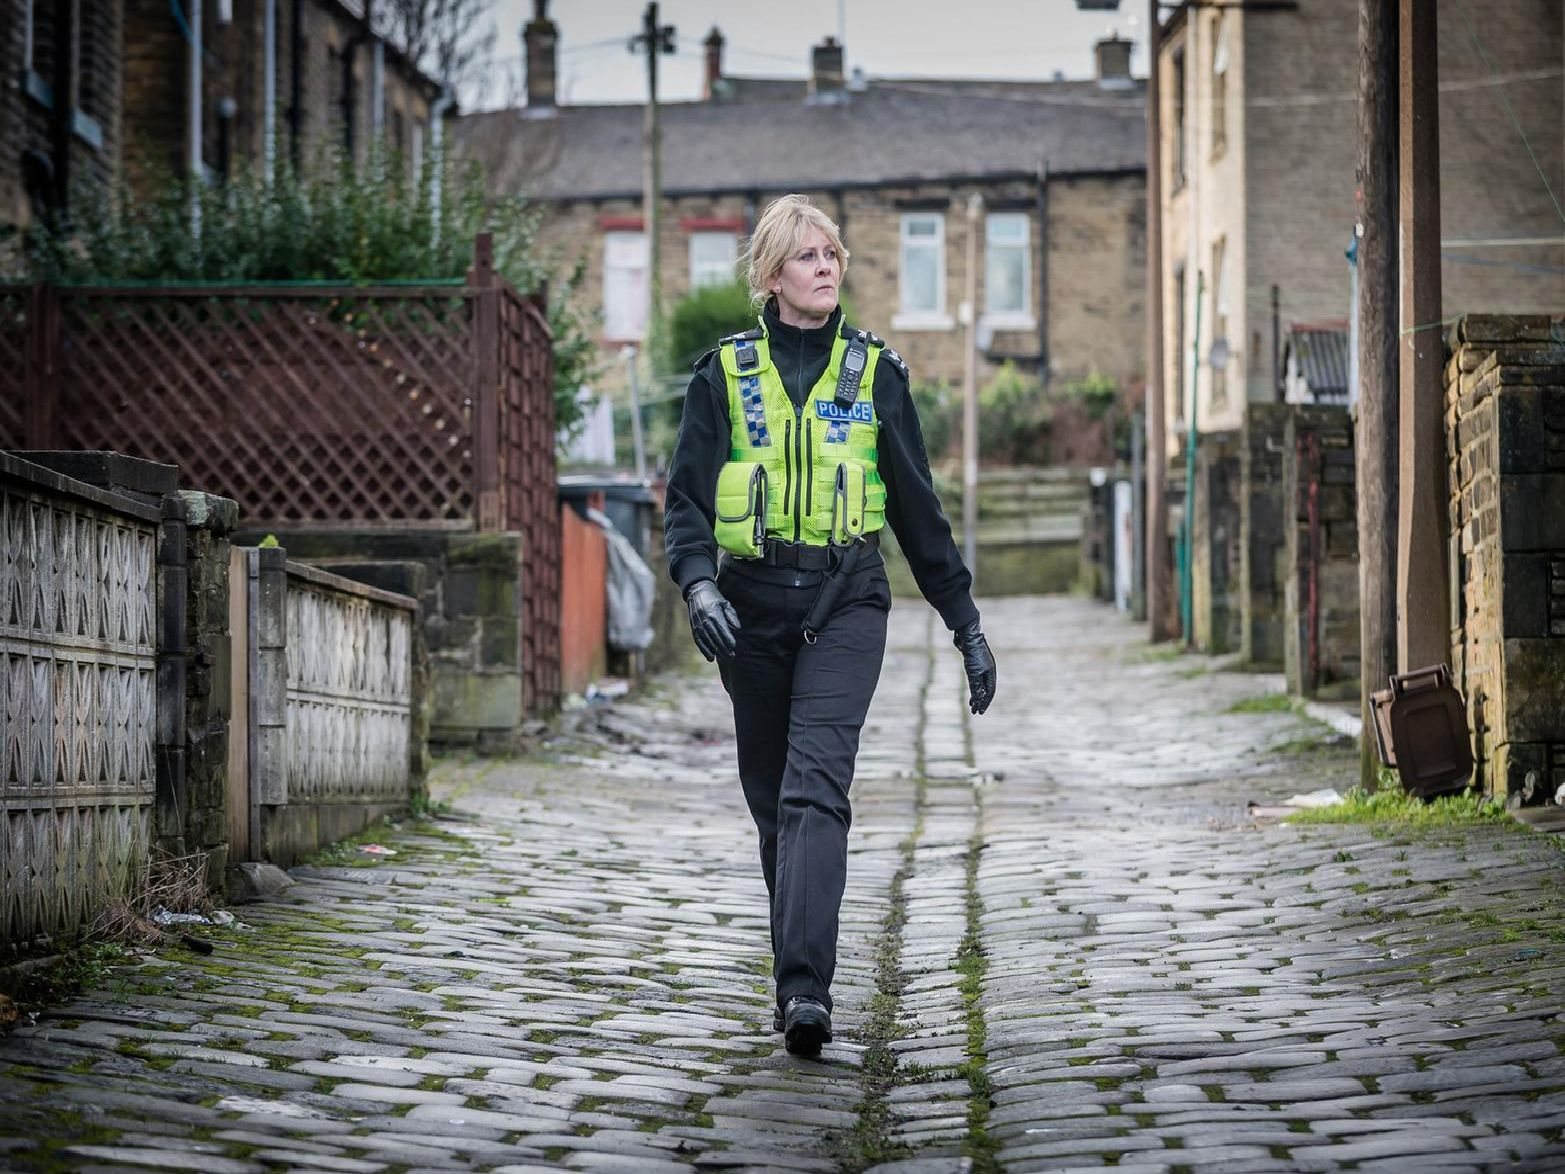 Sarah Lancashire starring in the BBC hit drama Happy Valley